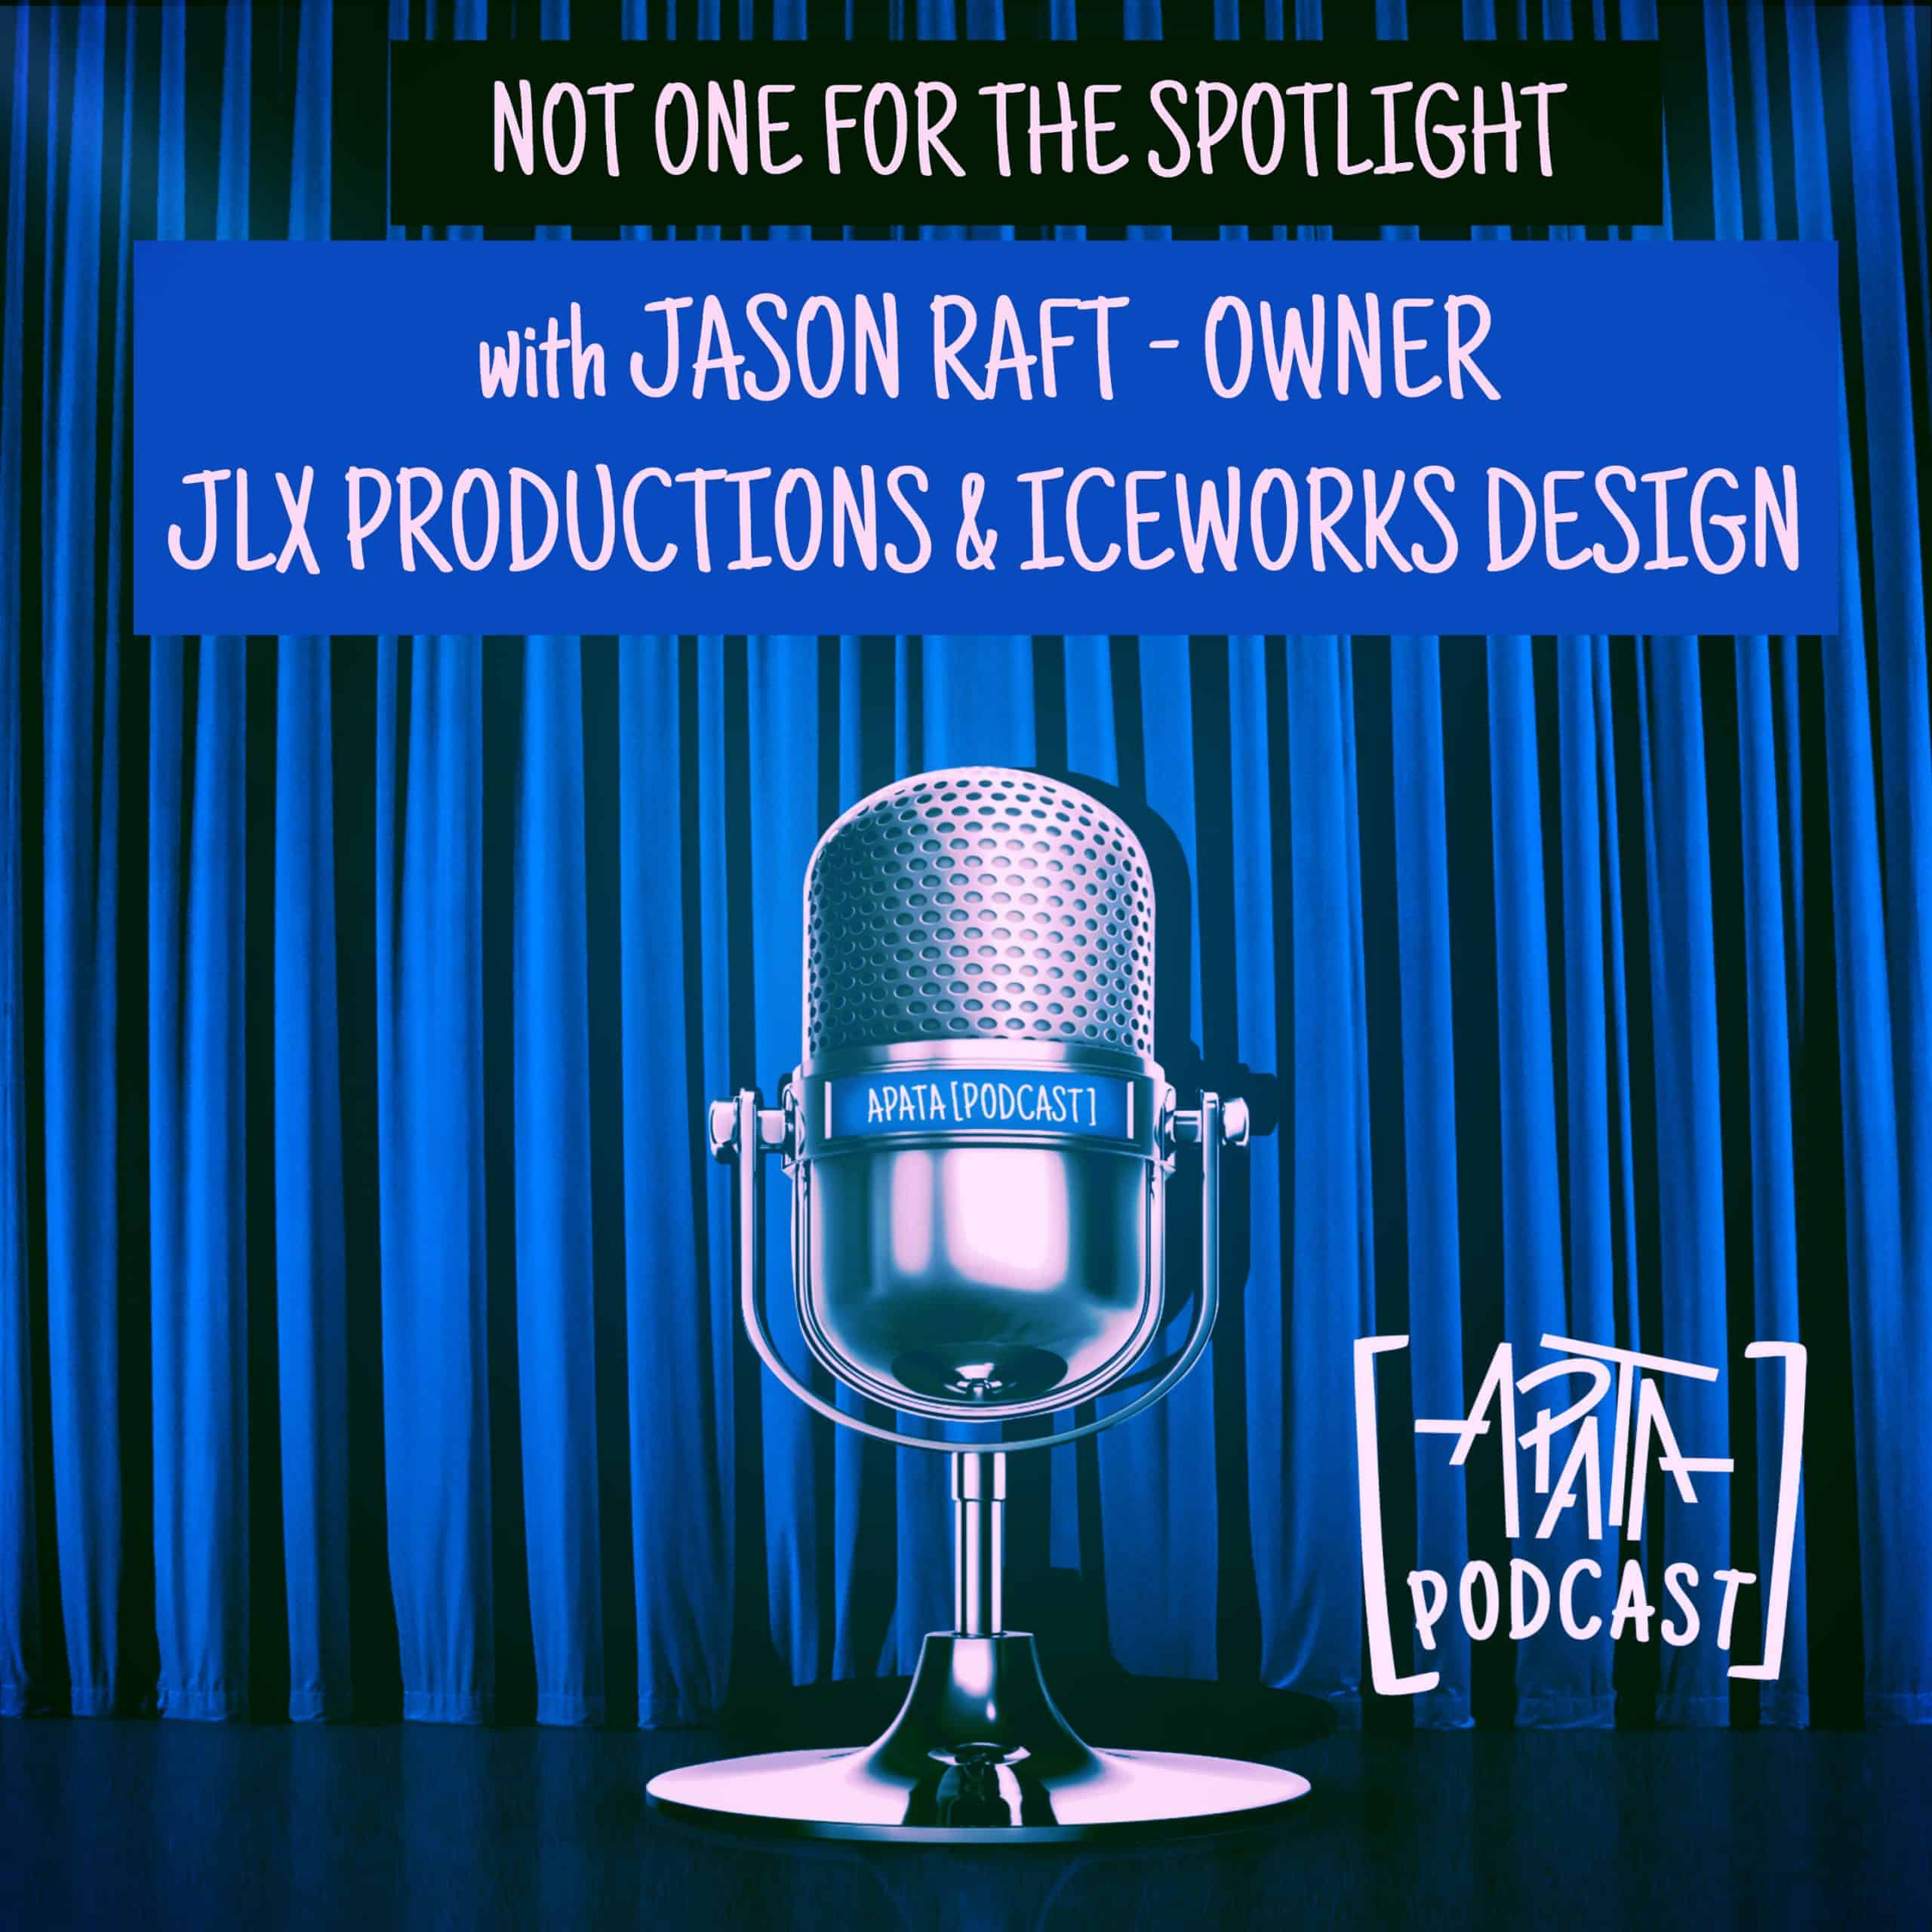 Not One For The Spotlight - with Jason Raft